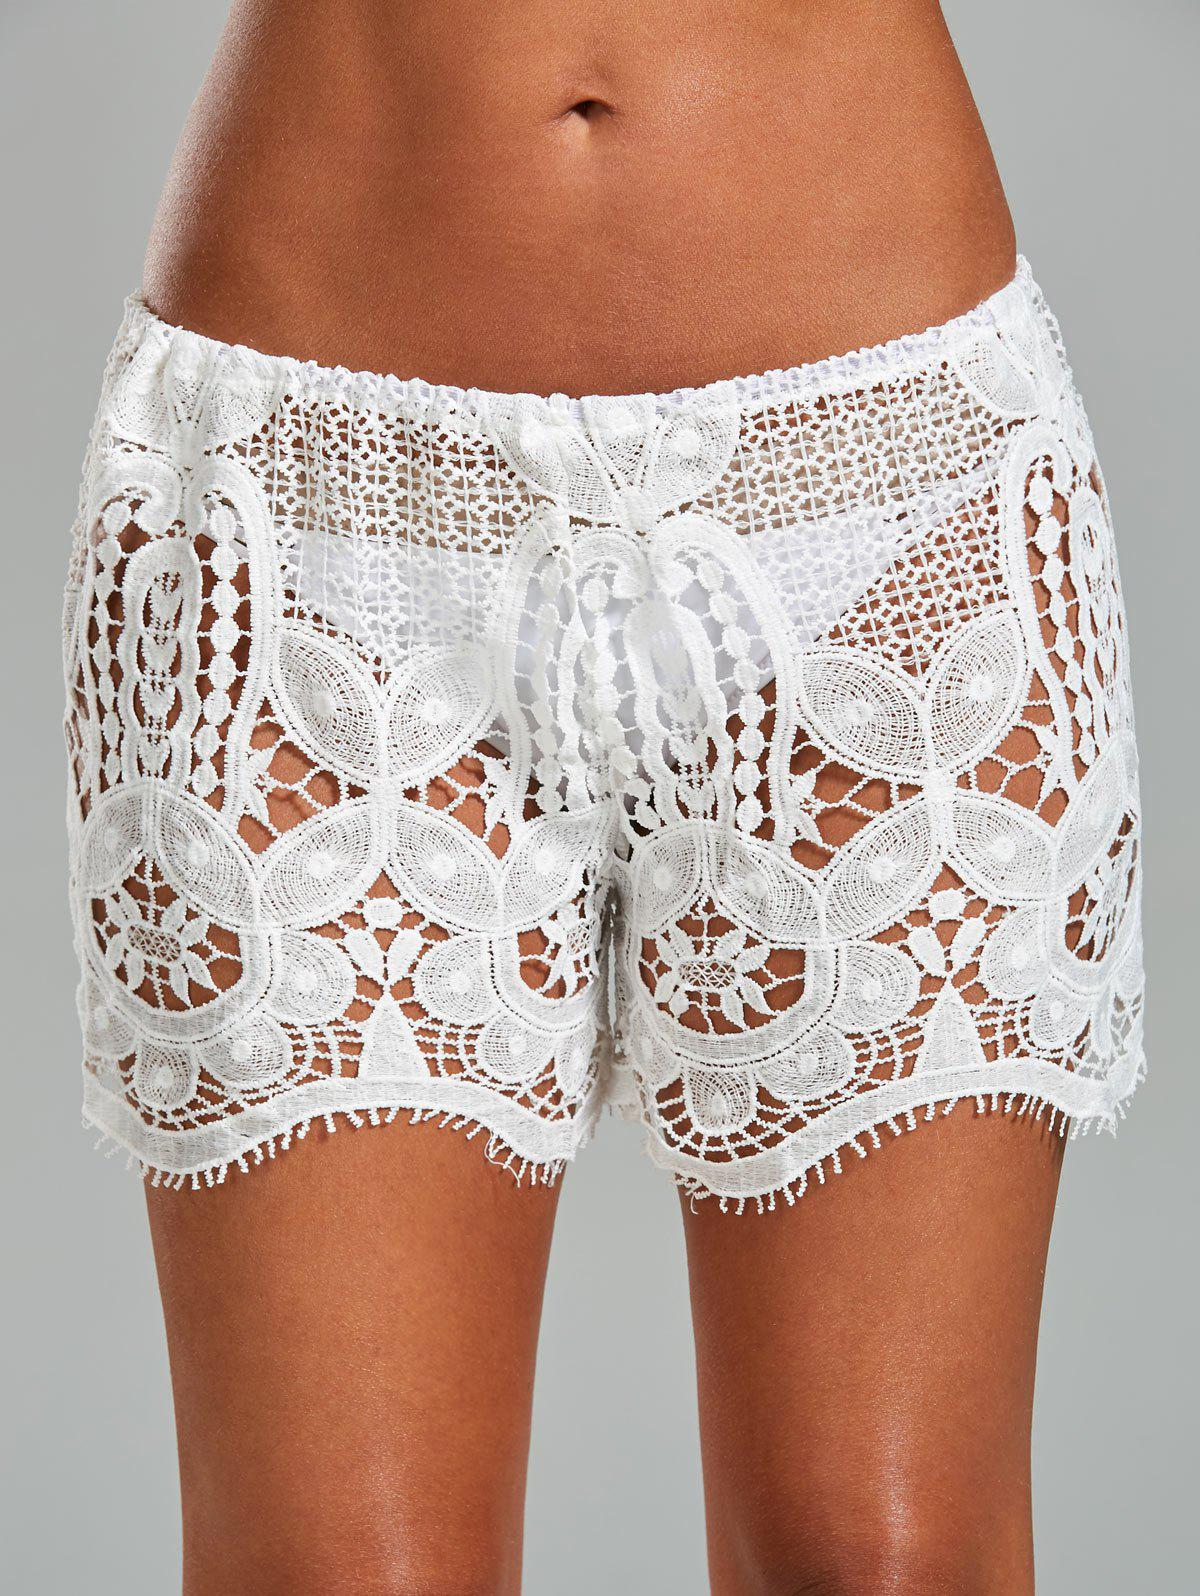 17 Off Crochet Lace Swimsuit Cover Up Shorts Rosegal